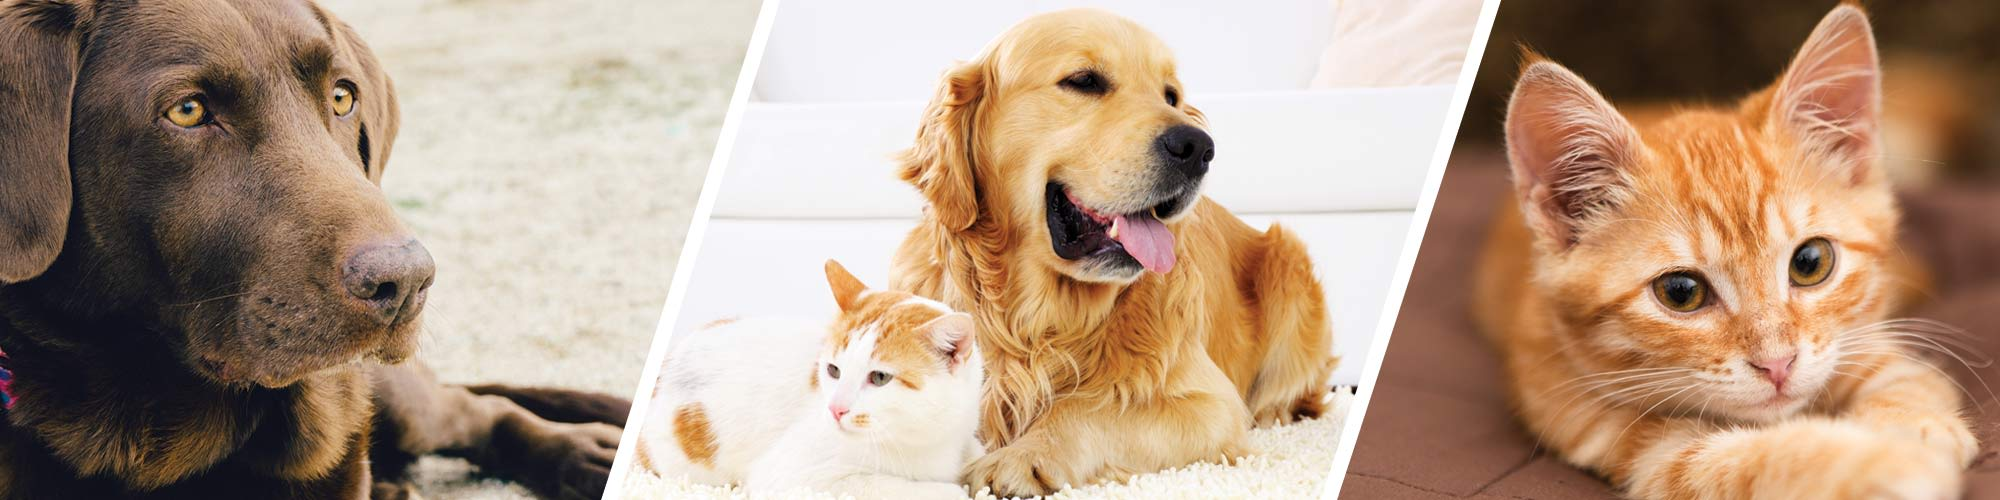 Pet friendly apartments at VIA